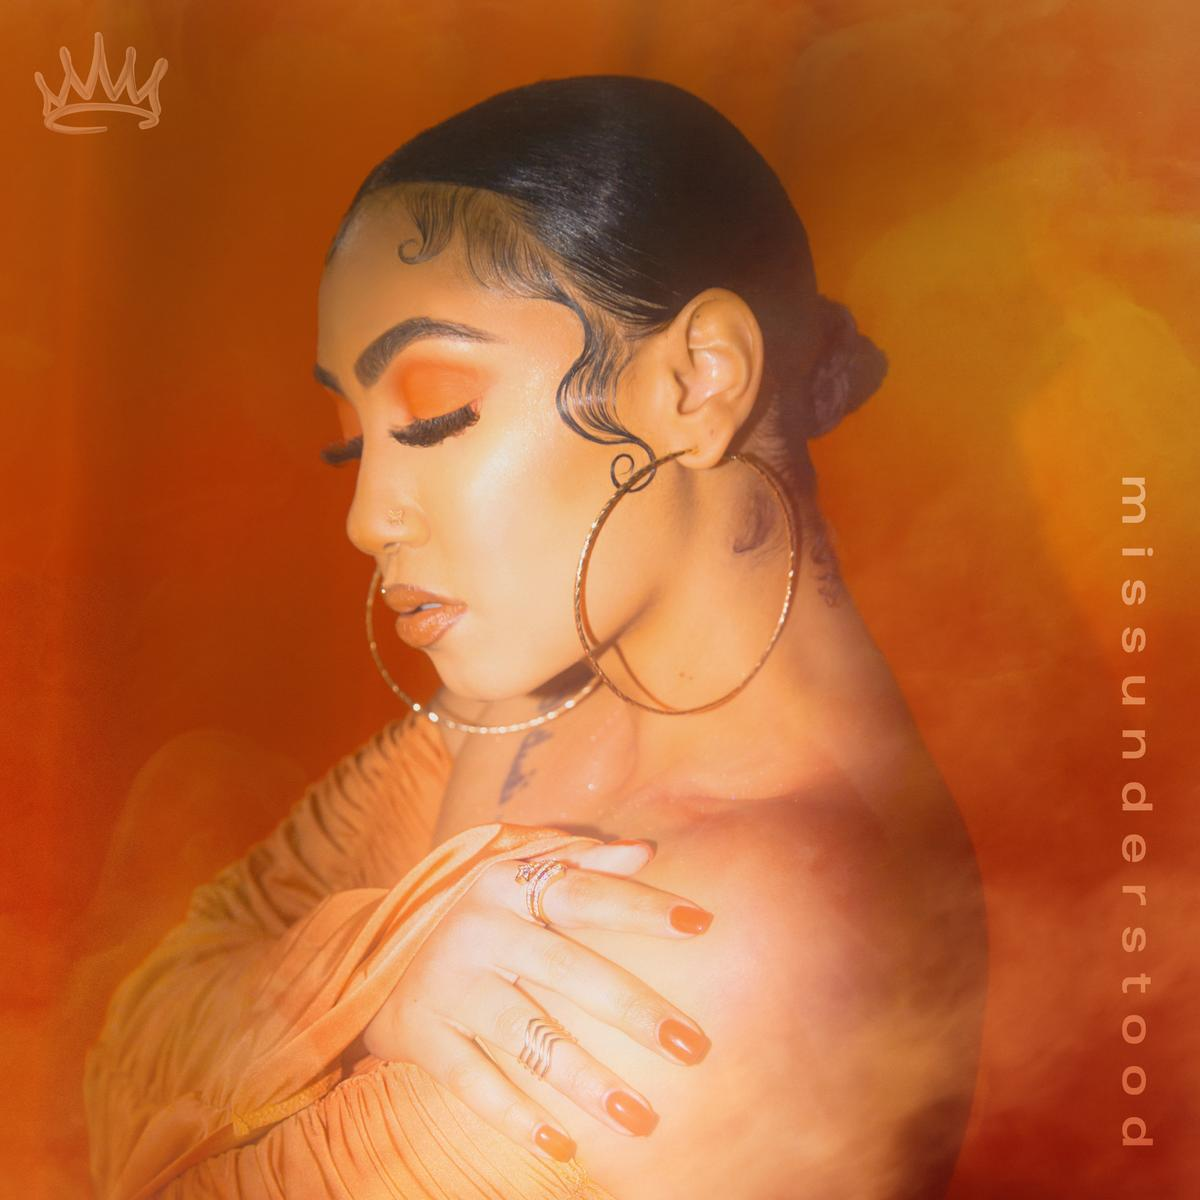 Queen Naija/UMG Recordings, Inc.